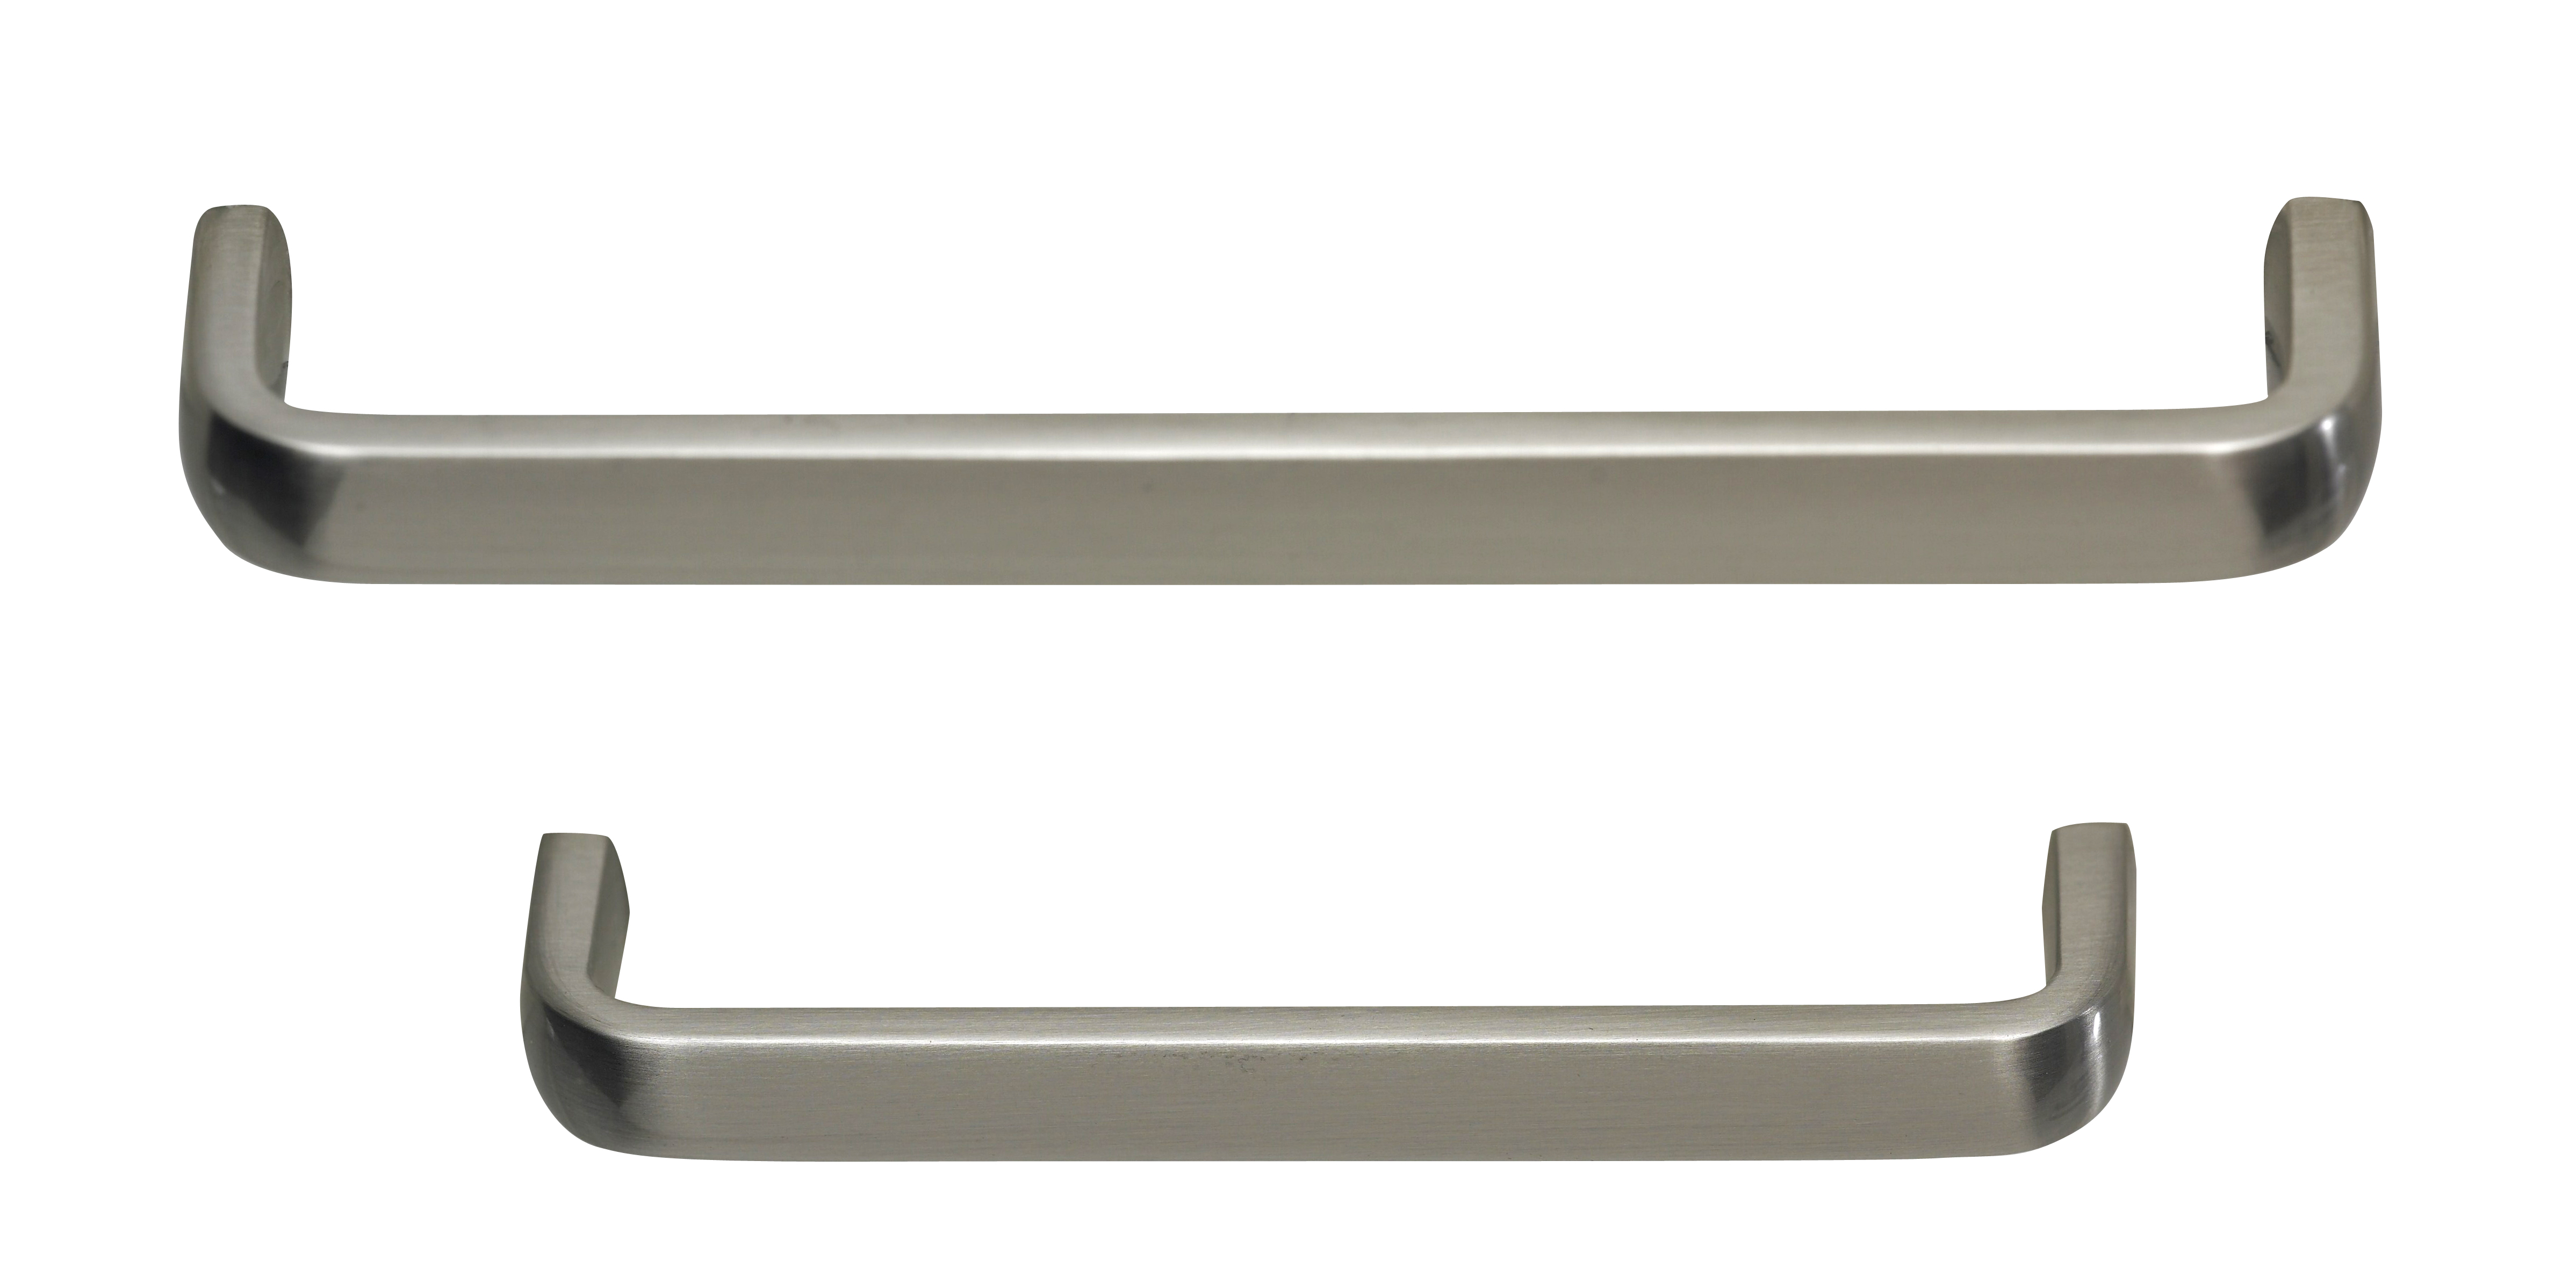 Modern Collection 128mm CTC Cabinet Pull - Brushed Nickel C1004-B-BN Modern  Collection 96mm CTC Cabinet Pull - Brushed Nickel